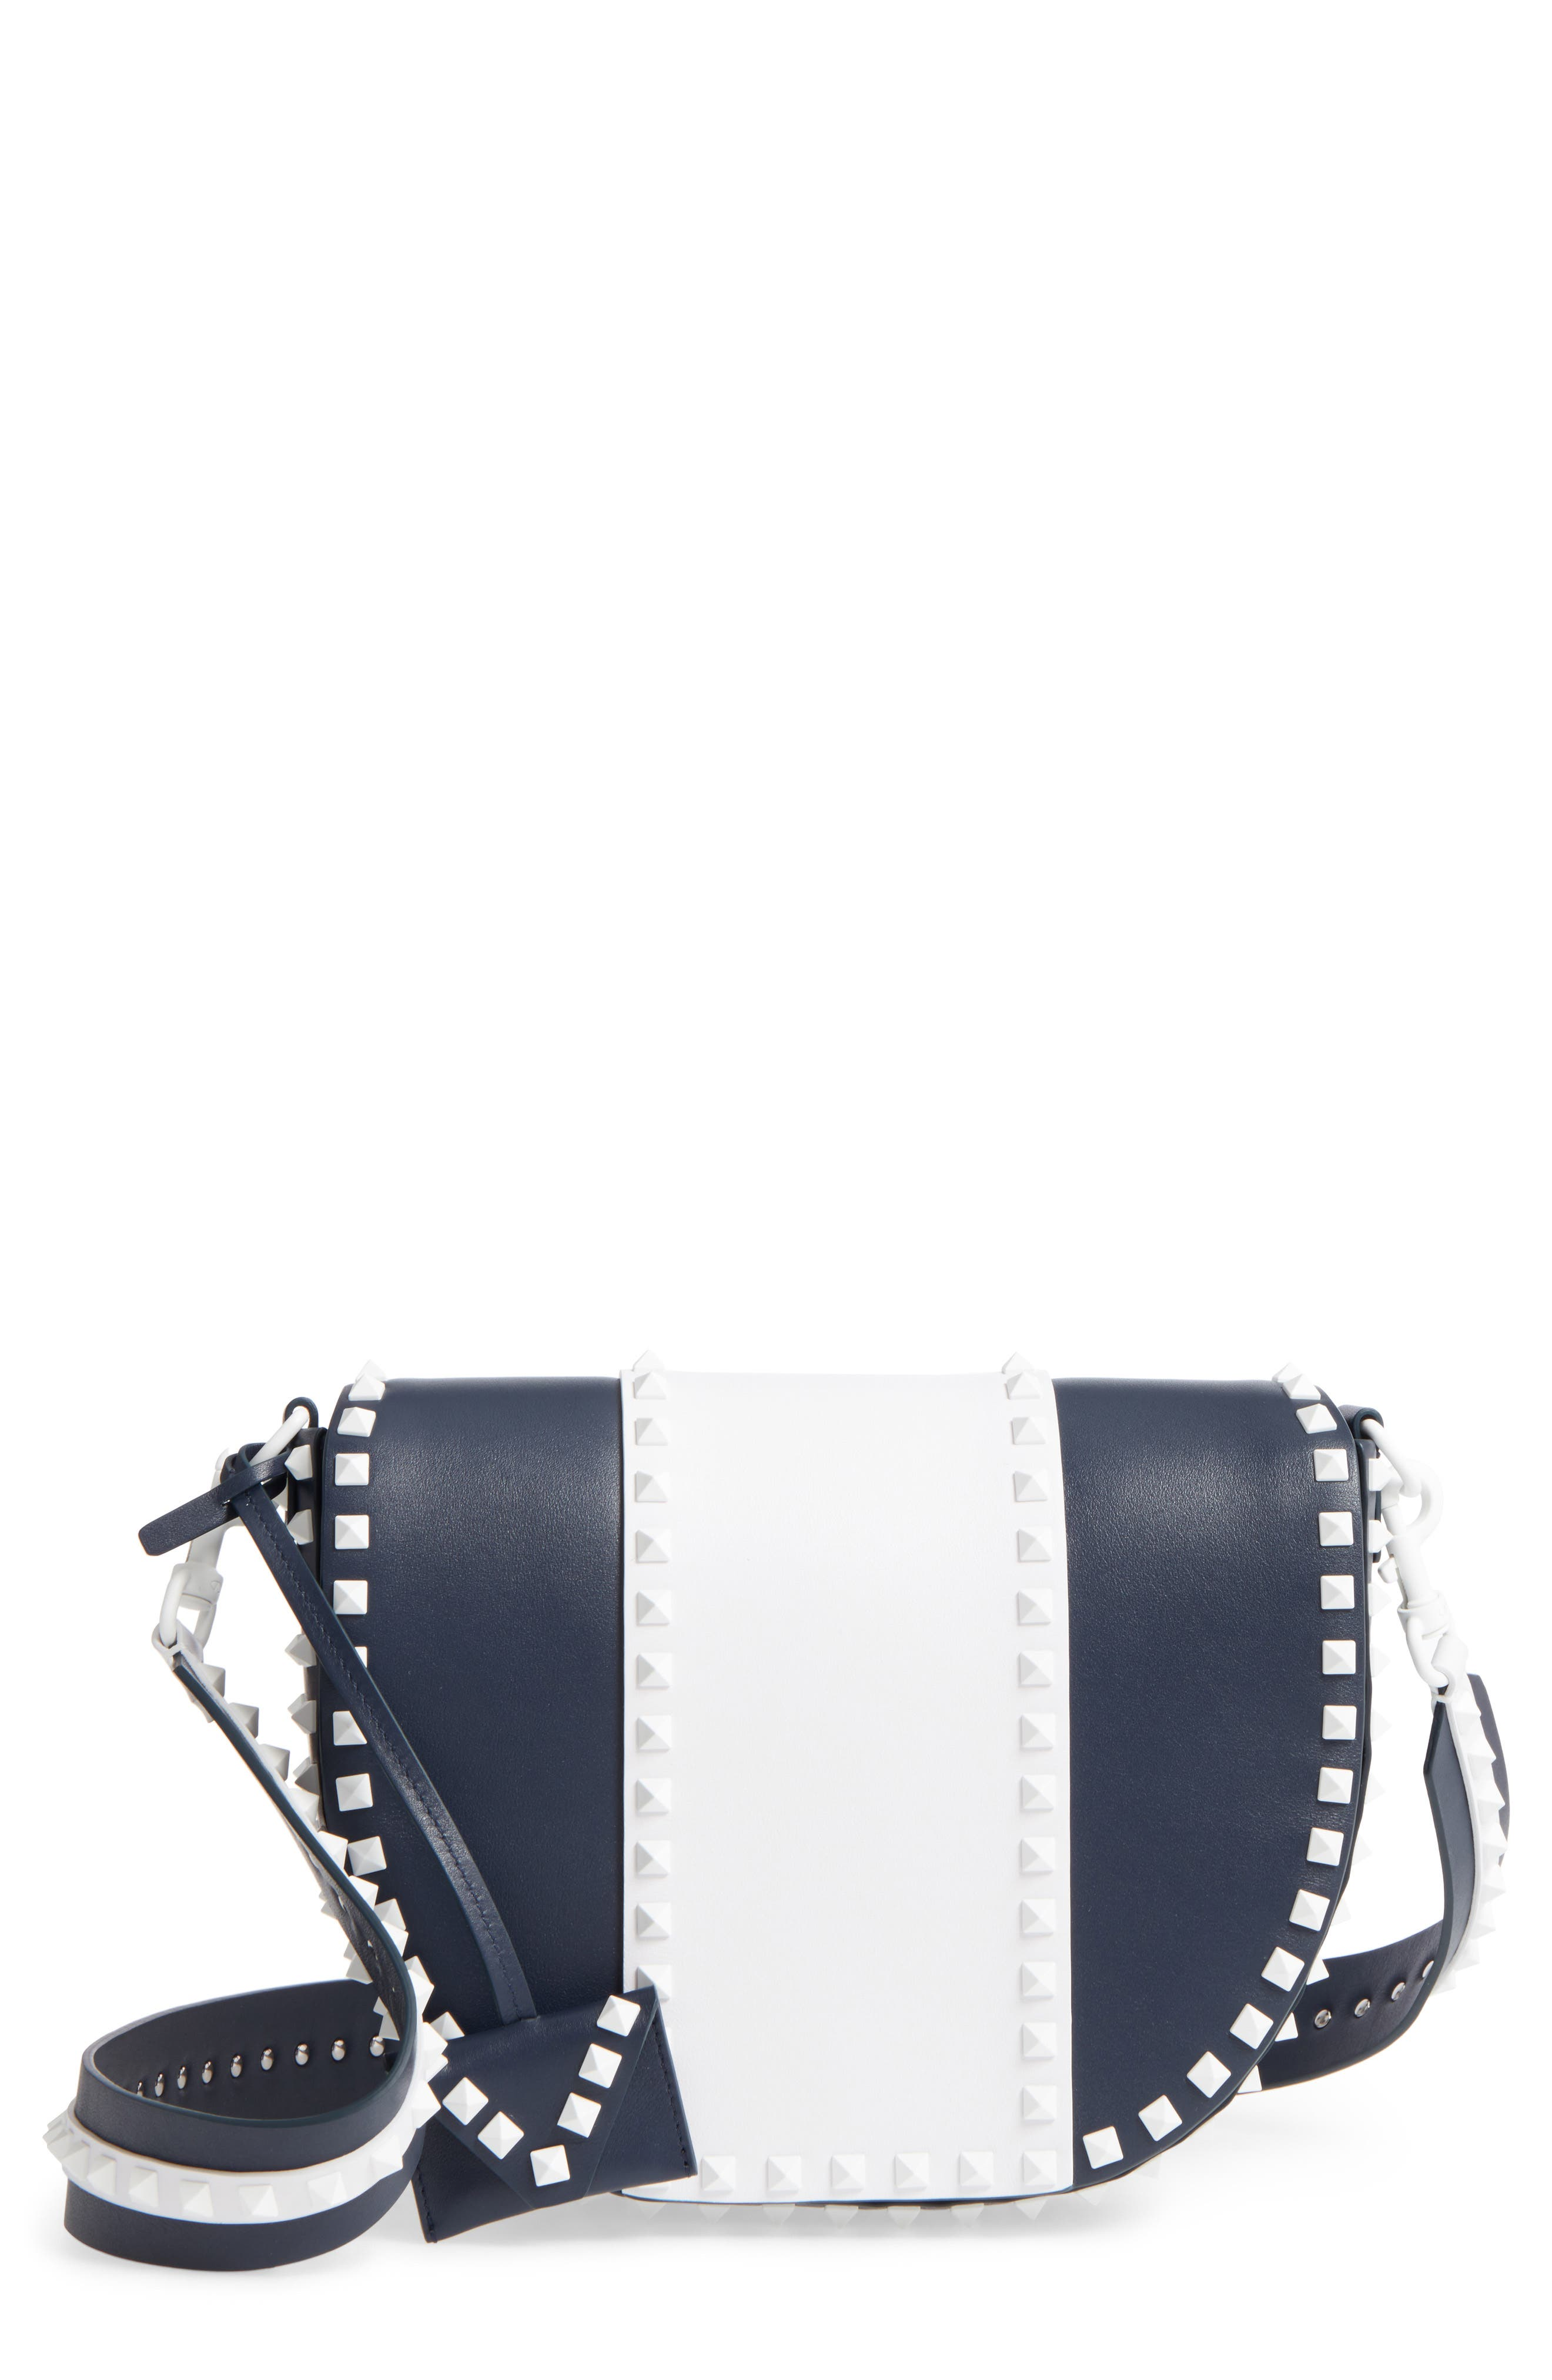 Main Image - VALENTINO GARAVANI Rockstud Leather Saddle Bag